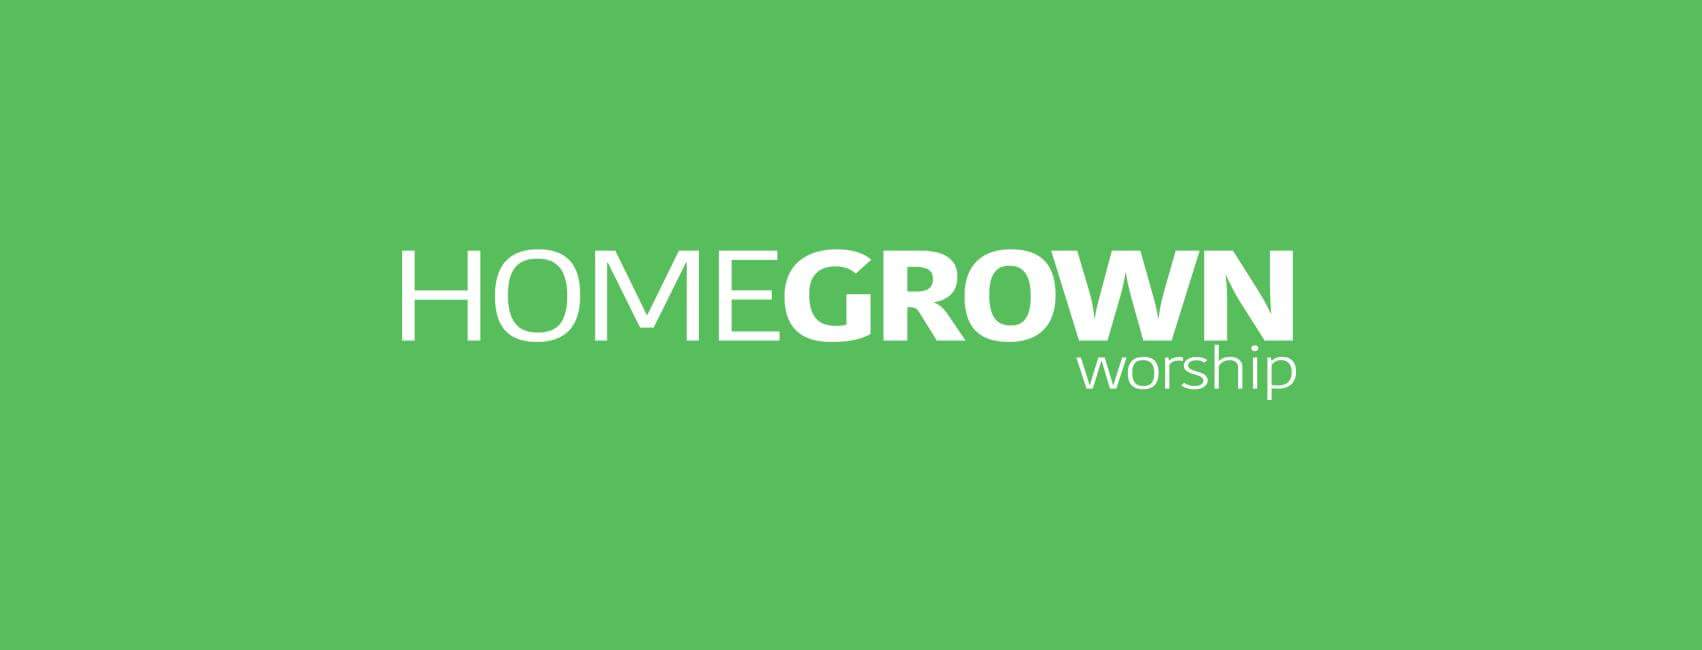 Homegrown Worship To Deliver Weekly New Worship Songs & Form Community of Songwriters